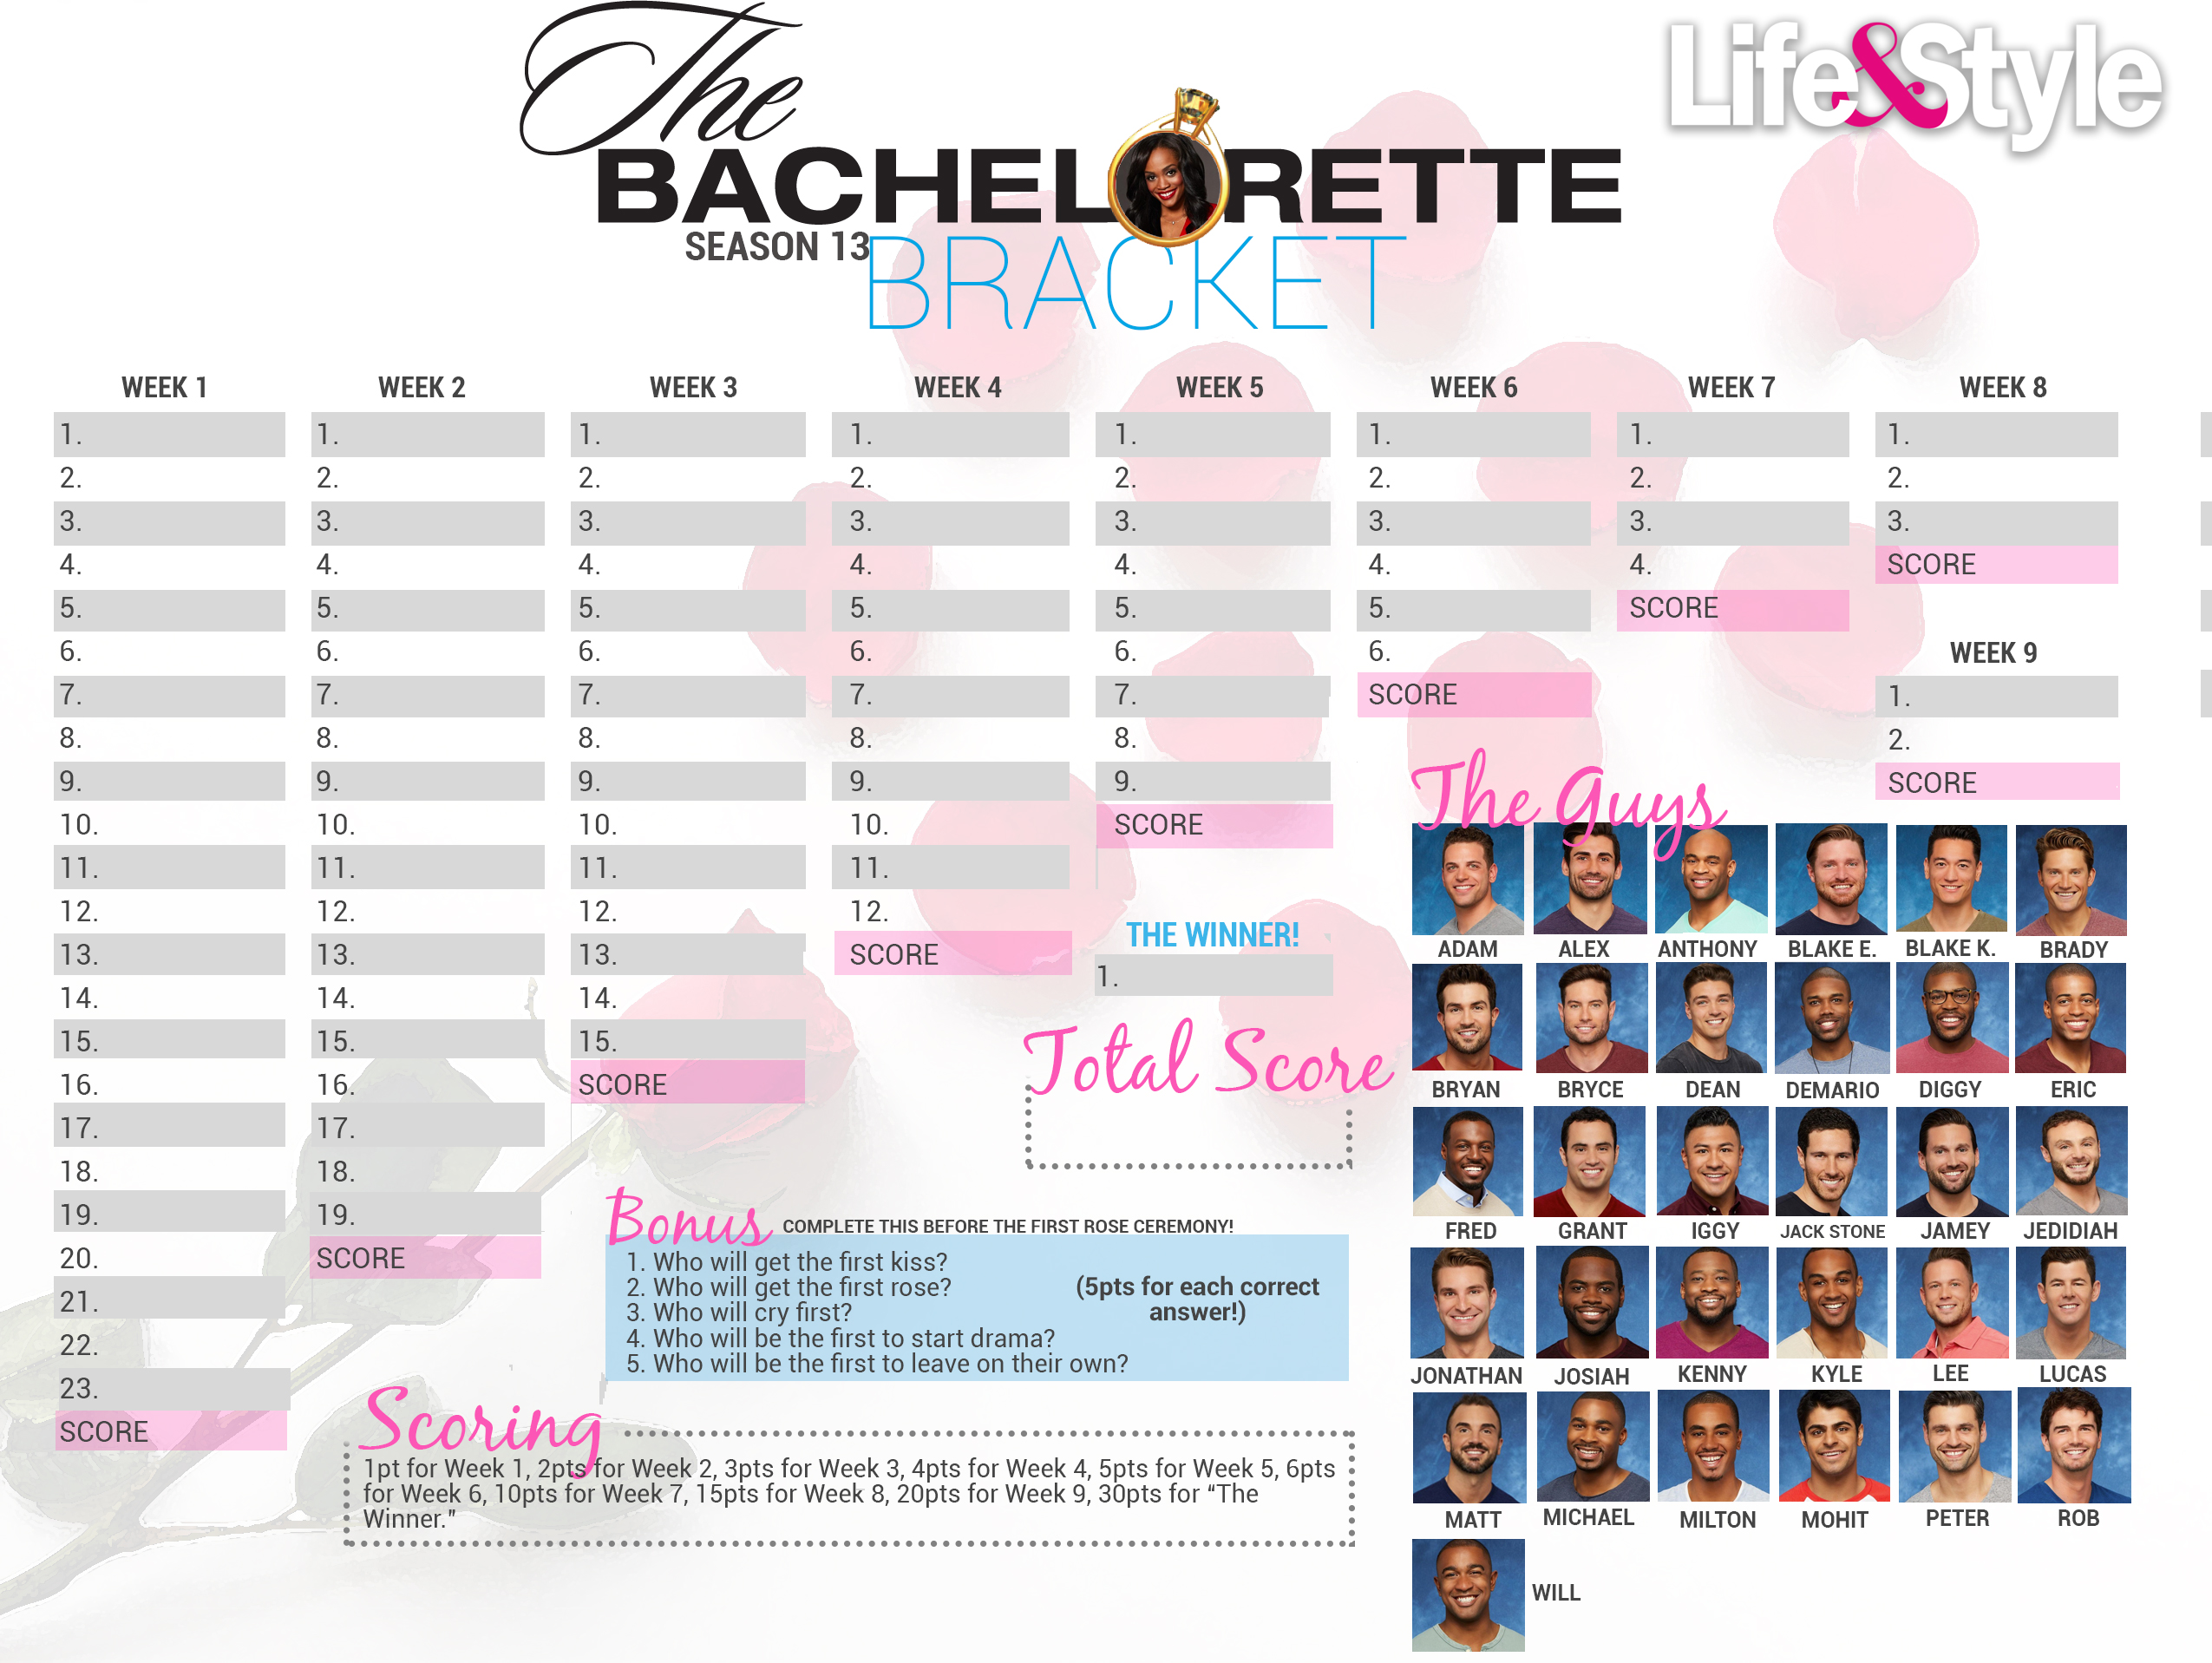 image about Bachelor Bracket Printable Nick referred to as Bachlorette 2017 Bracket: Obtain, Print Yours Currently